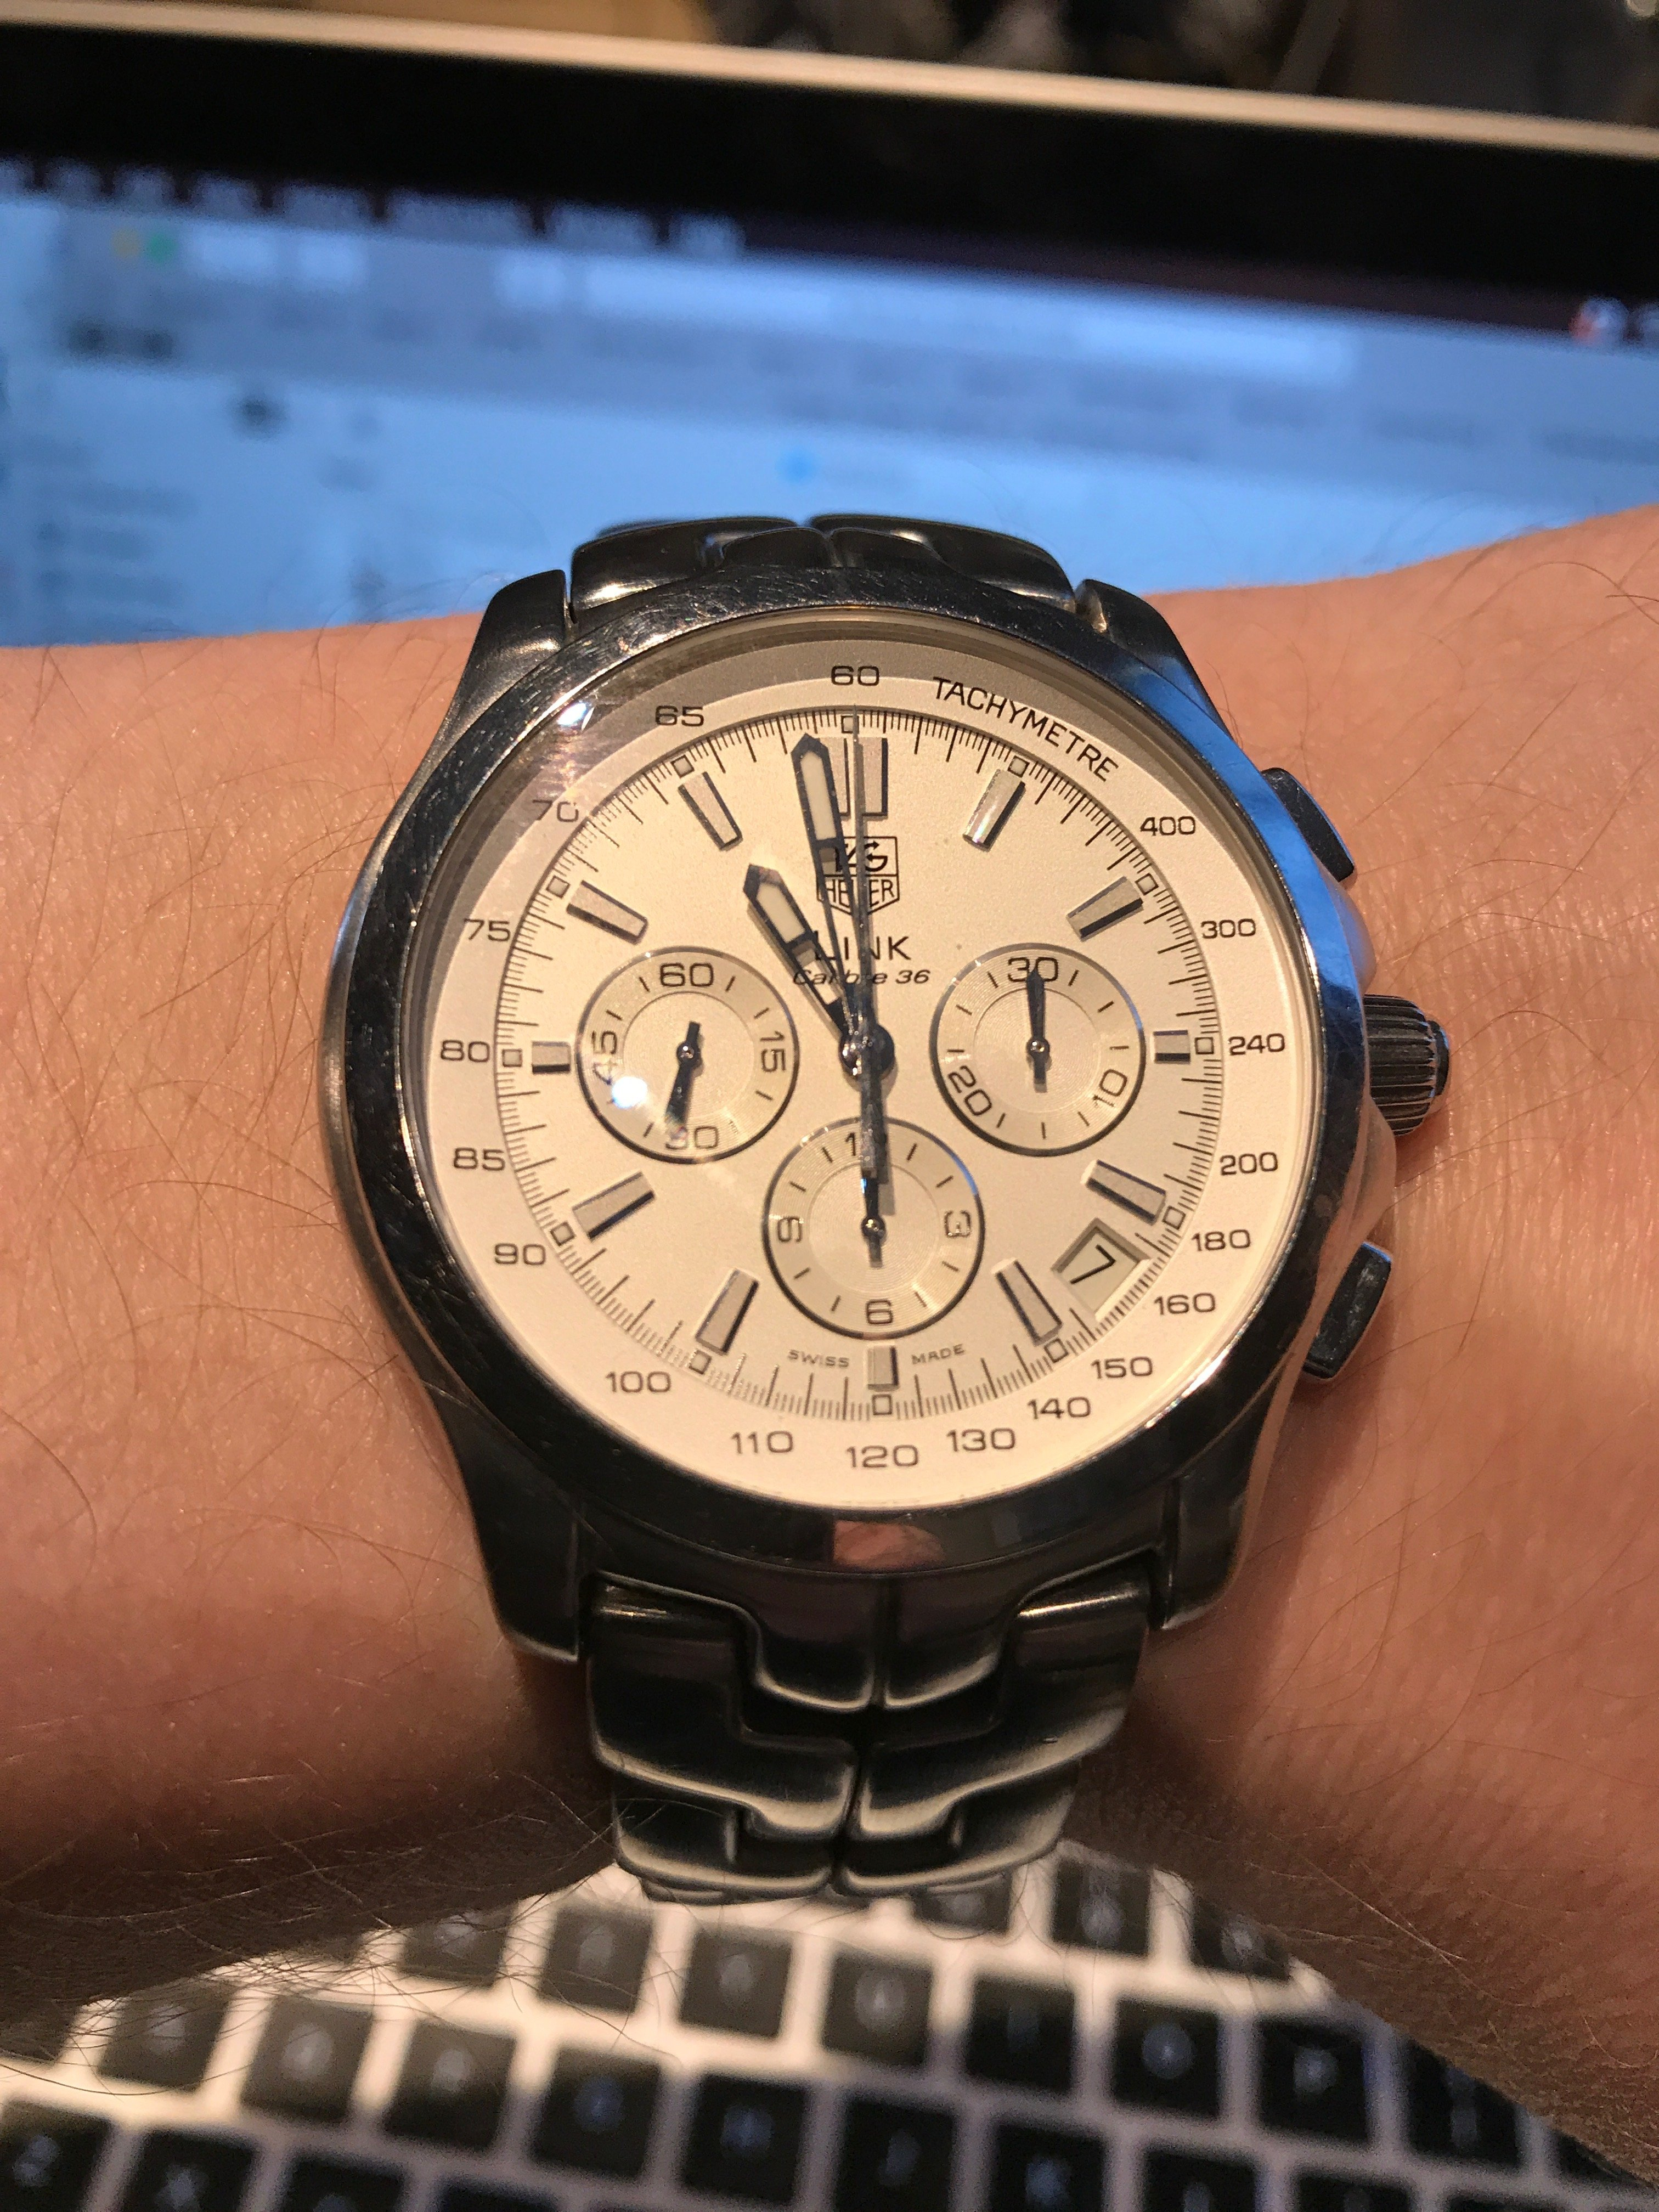 93e68c707d3 WITHDRAWN - REDUCED, OPEN TO OFFERS / TRADE - TAG Heuer Link Calibre ...